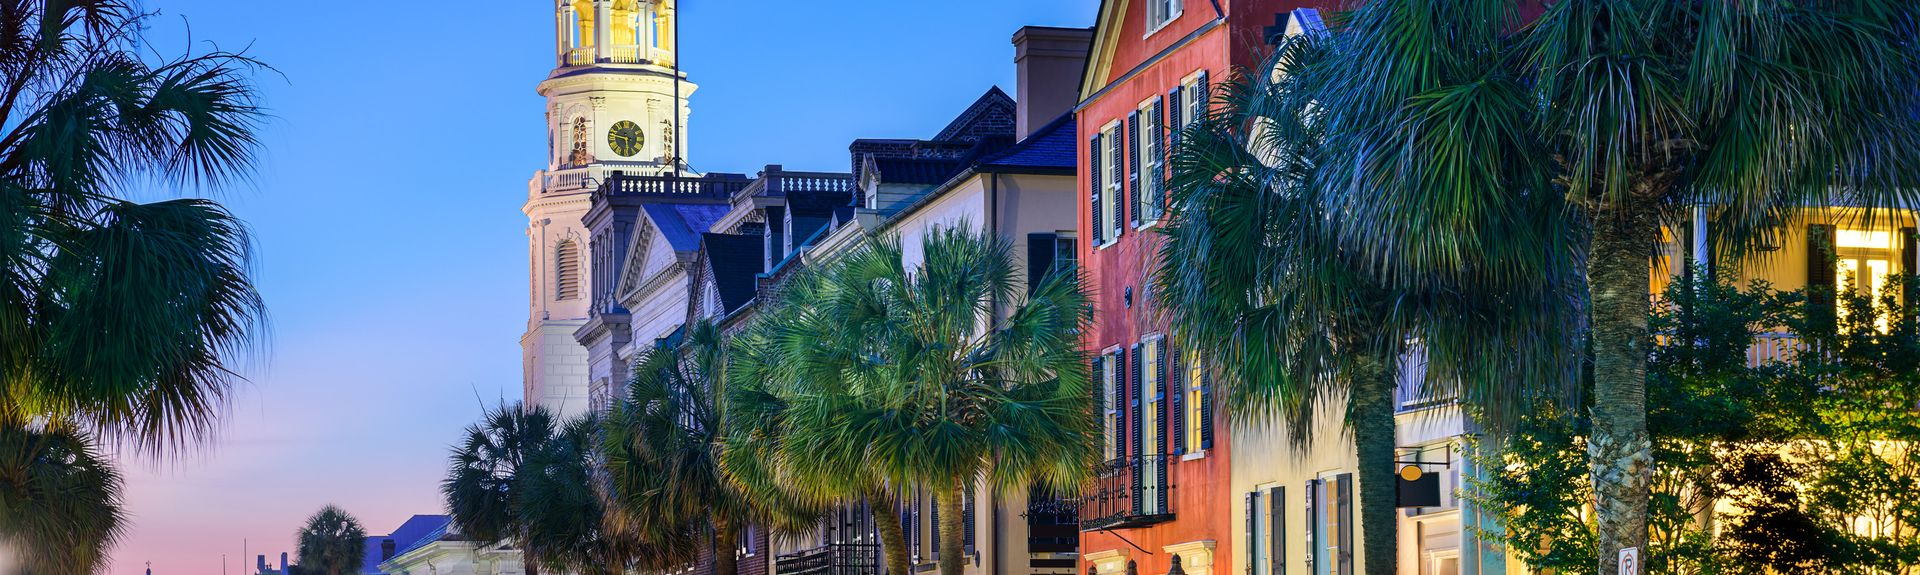 Charleston Historic District, Charleston, South Carolina, USA